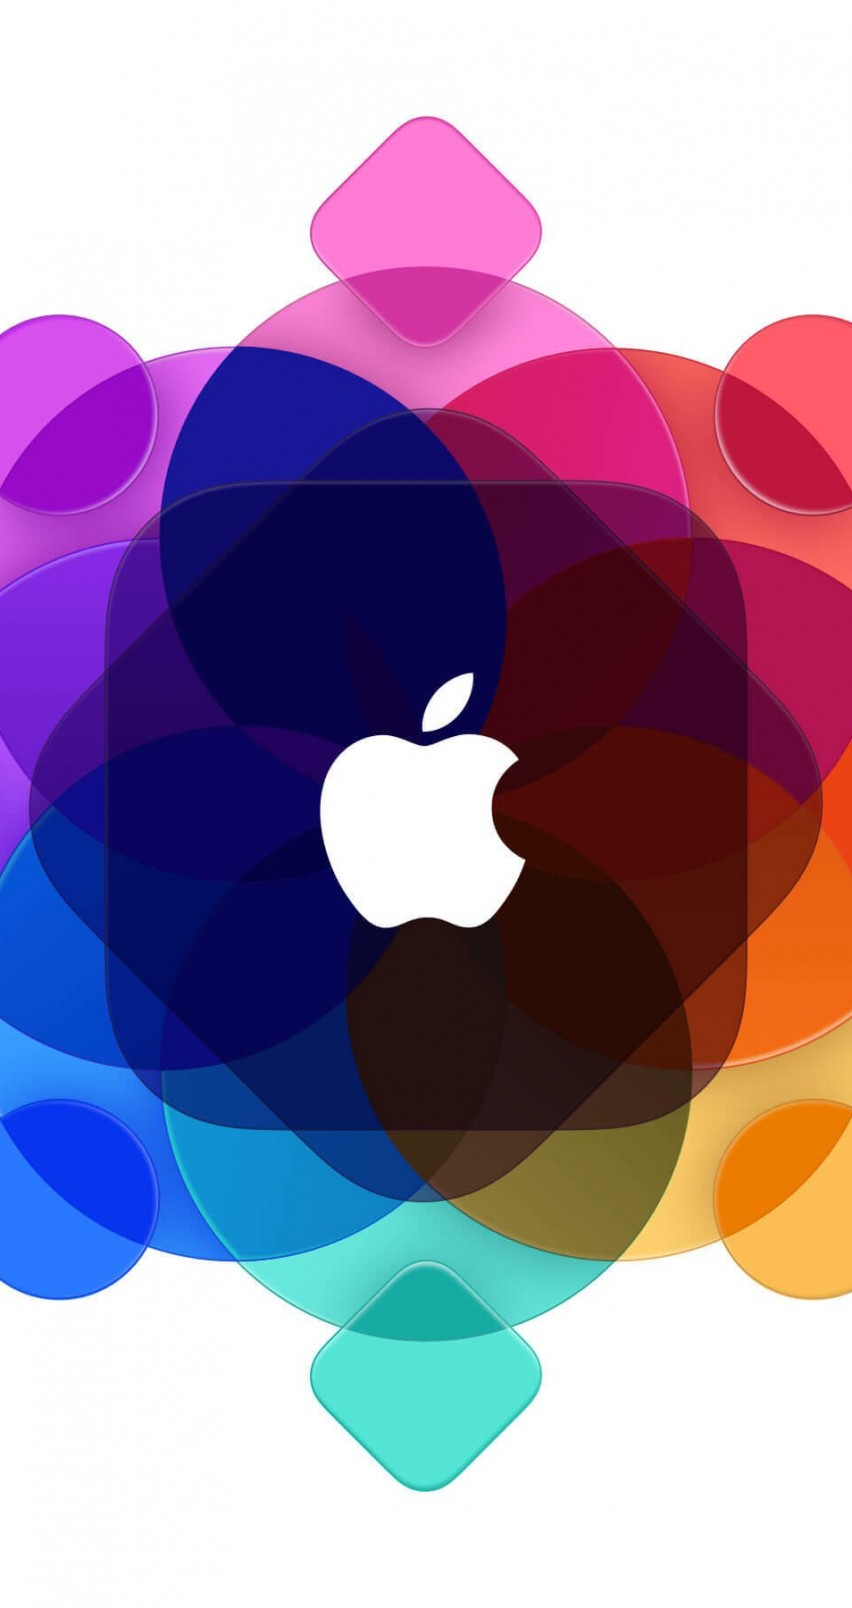 Hd wallpapers for iphone 6 - Download Apple Wwdc 2015 Hd Wallpaper For Iphone 6 6s